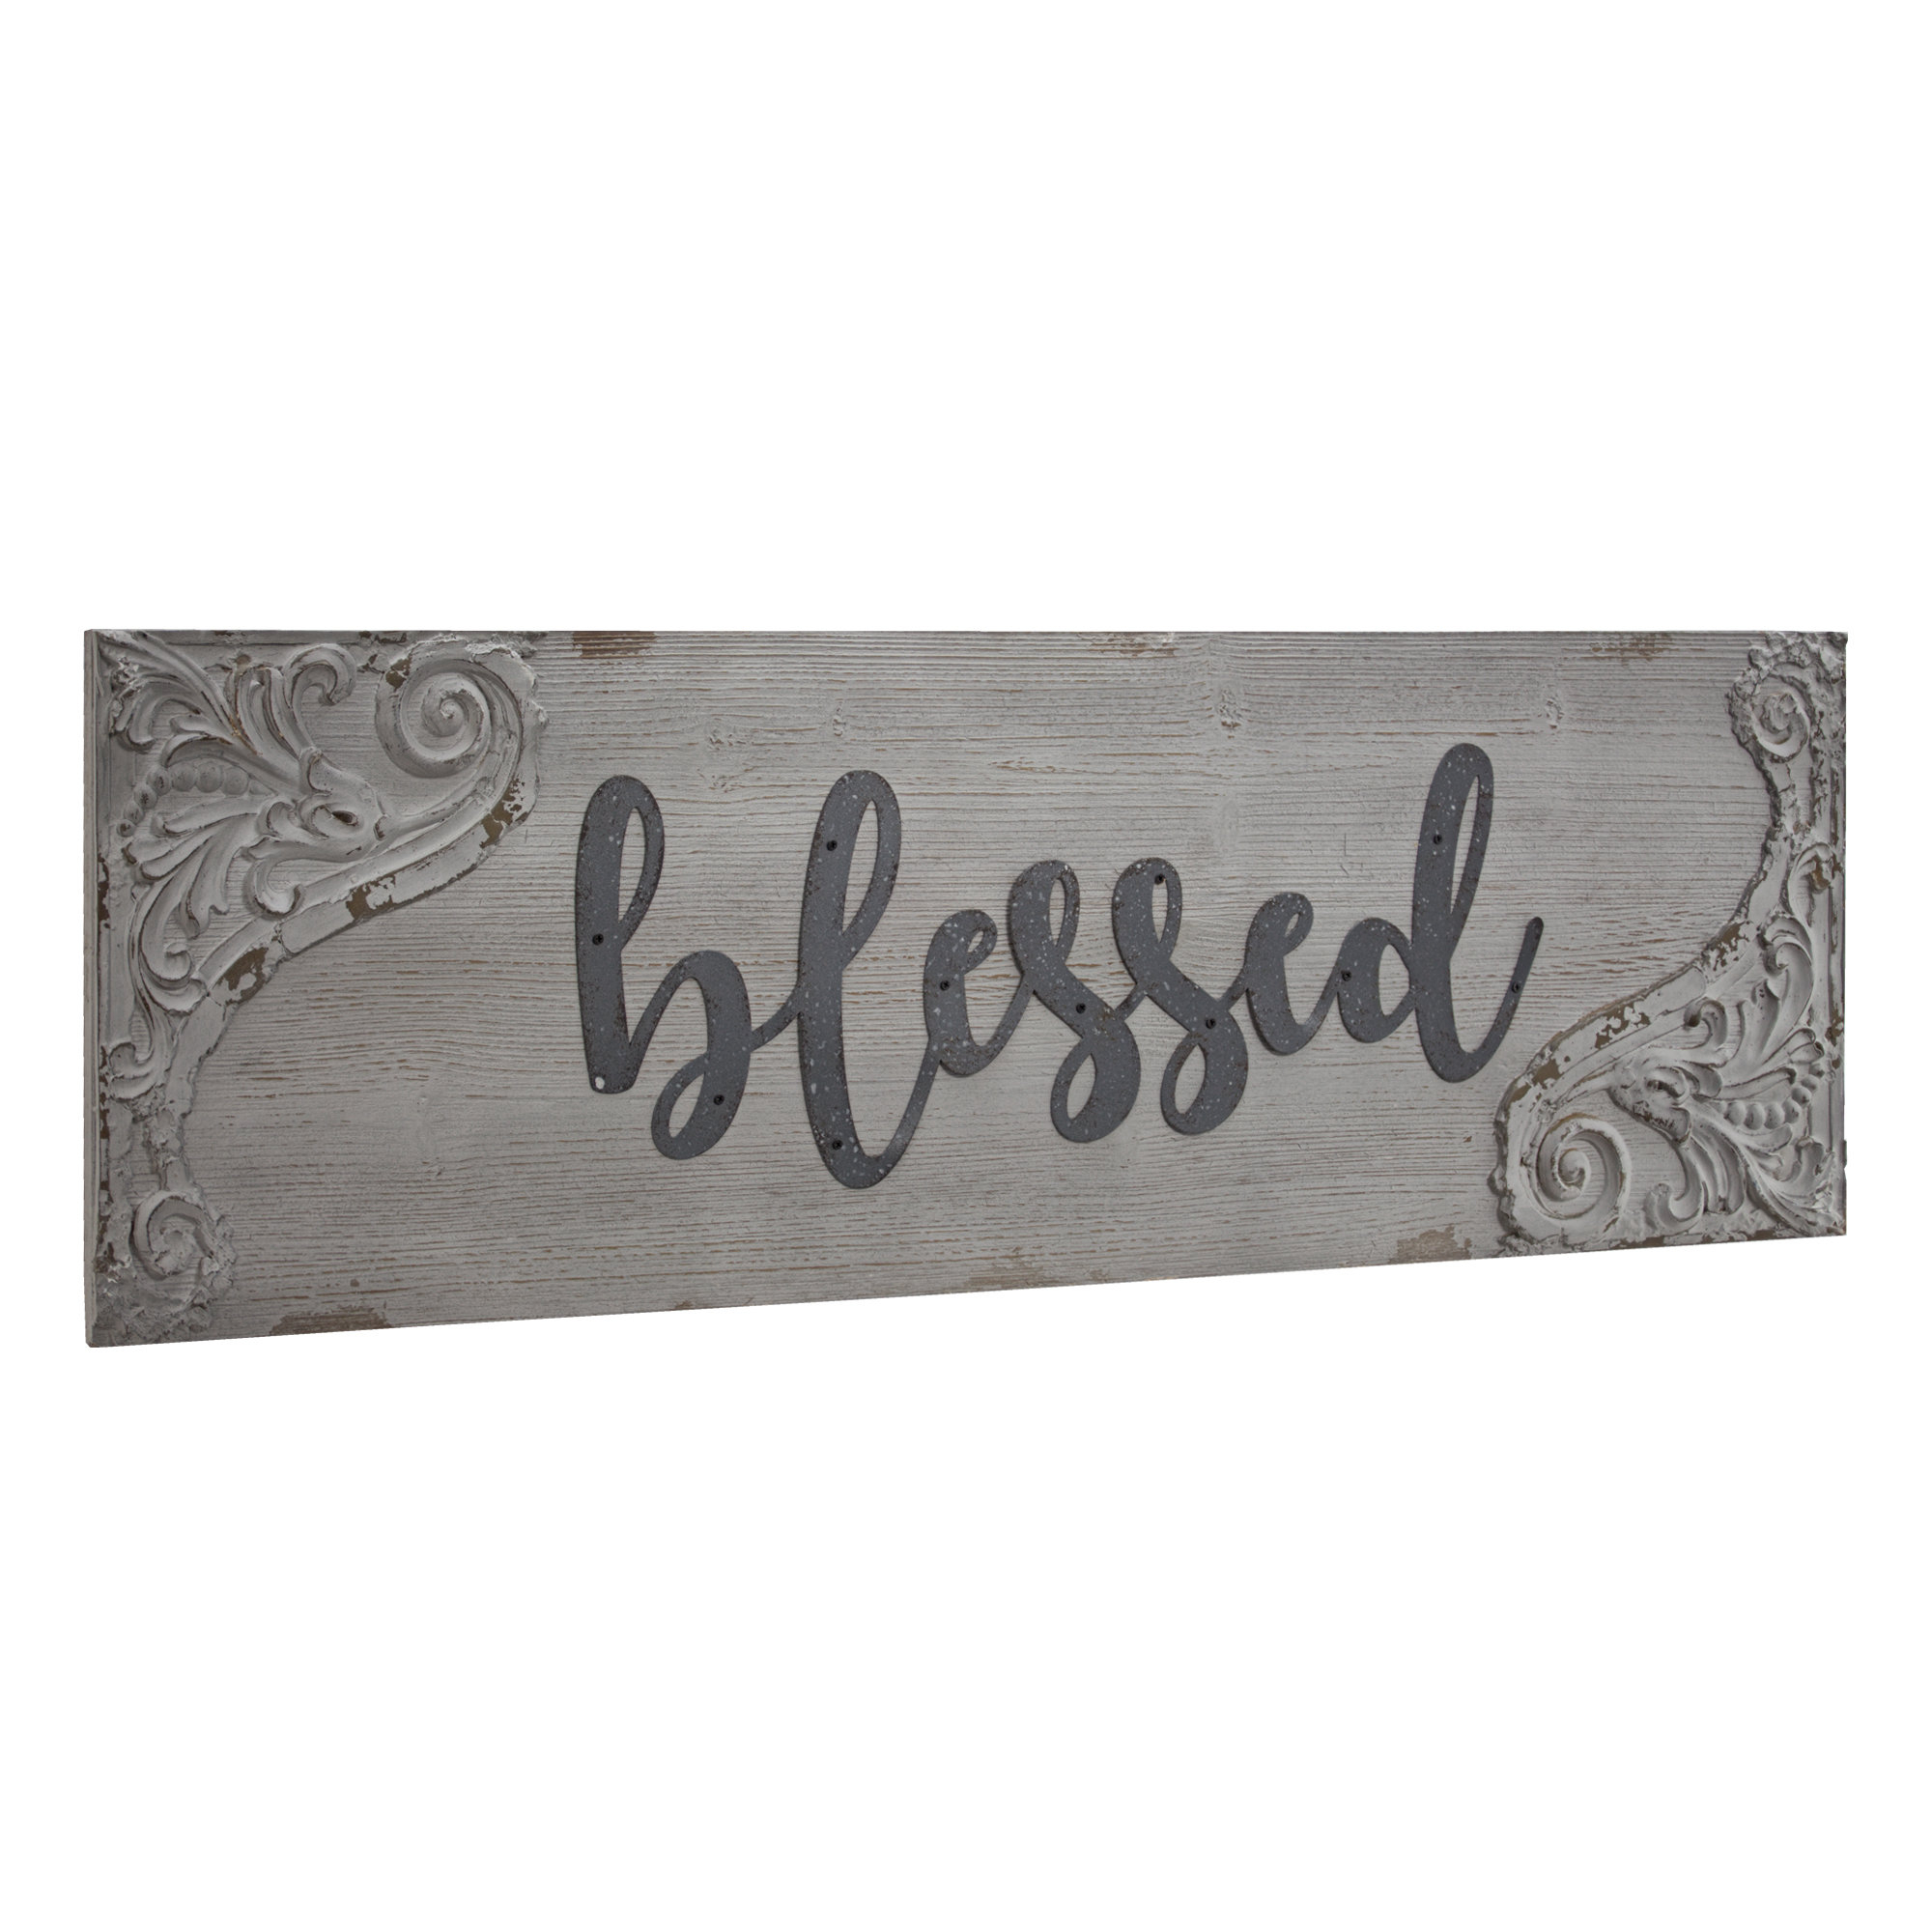 Blessed Sign   Wayfair With Regard To Blessed Steel Wall Decor (View 7 of 30)